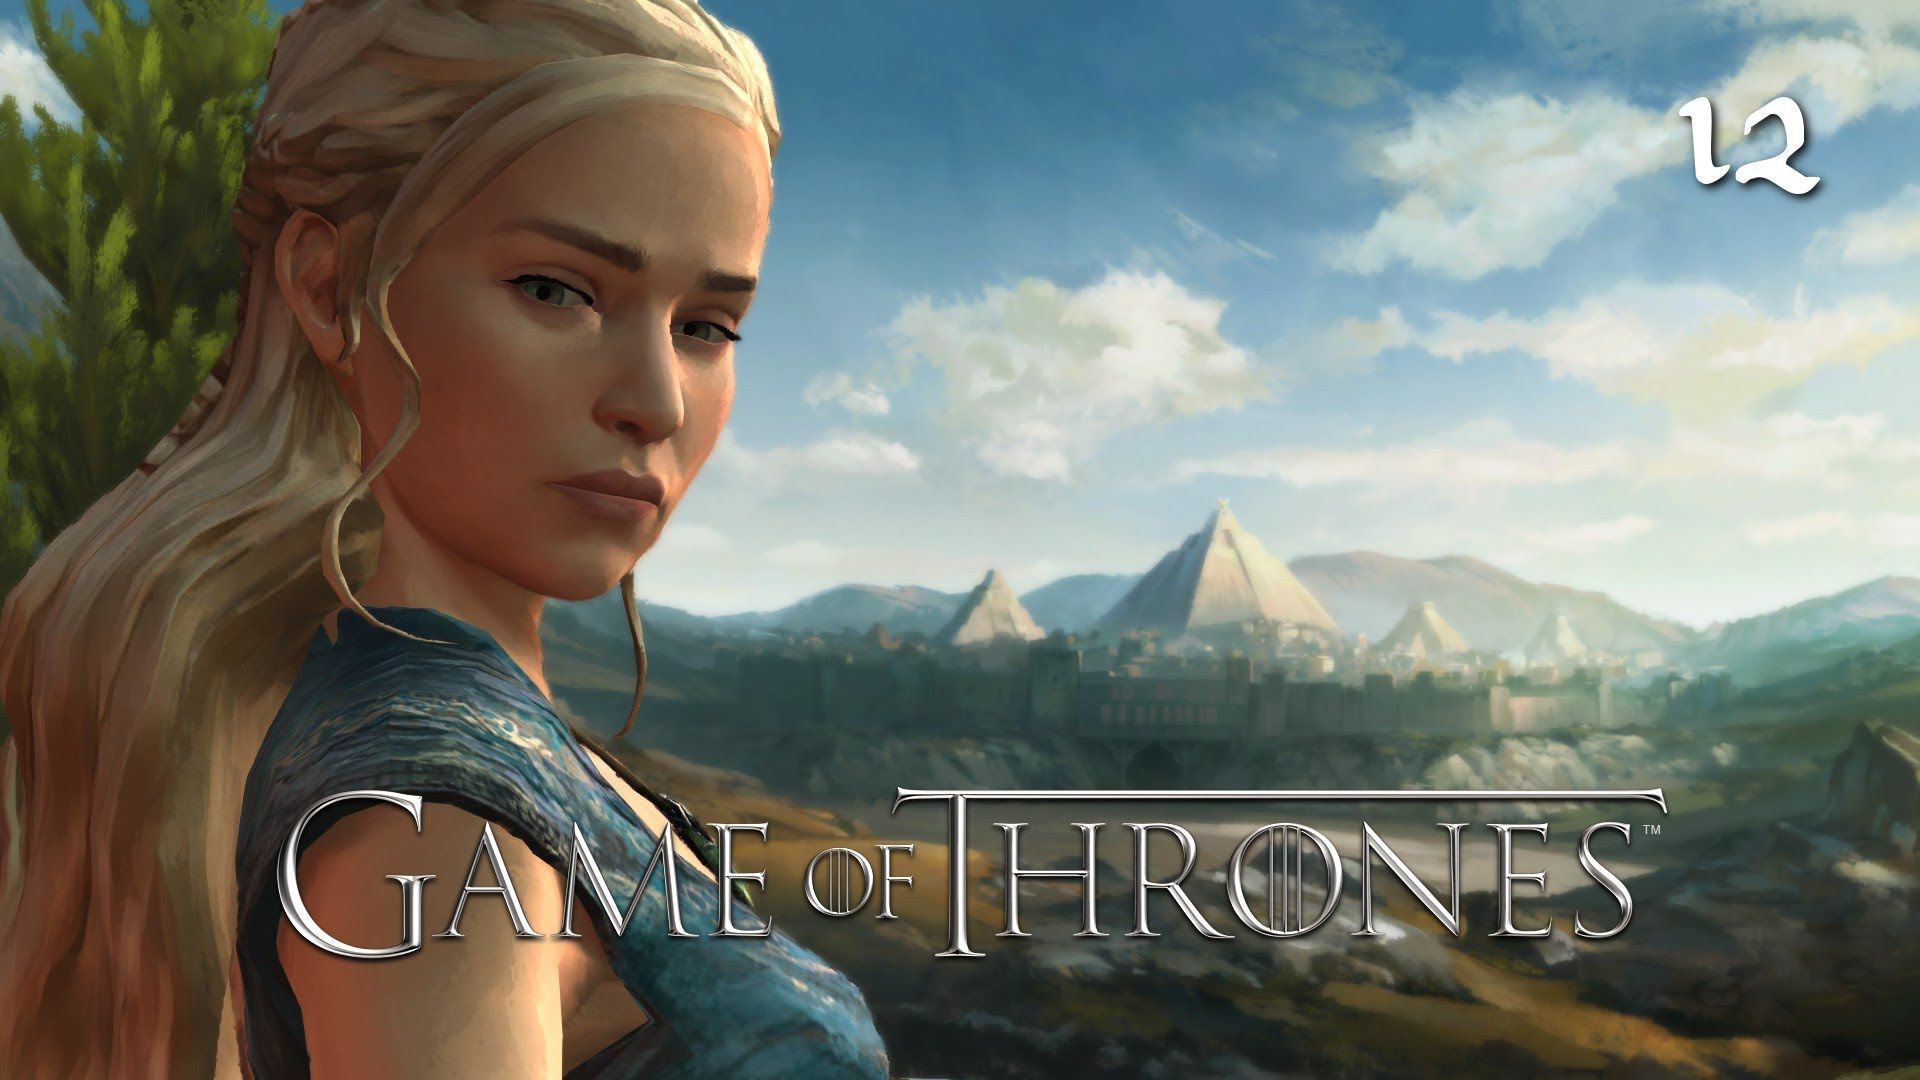 Game Of Thrones Telltale Games Episode 3 The Sword In The Darkness Part 4 Game Of Thrones Episodes Game Of Thrones Telltale Episode 3